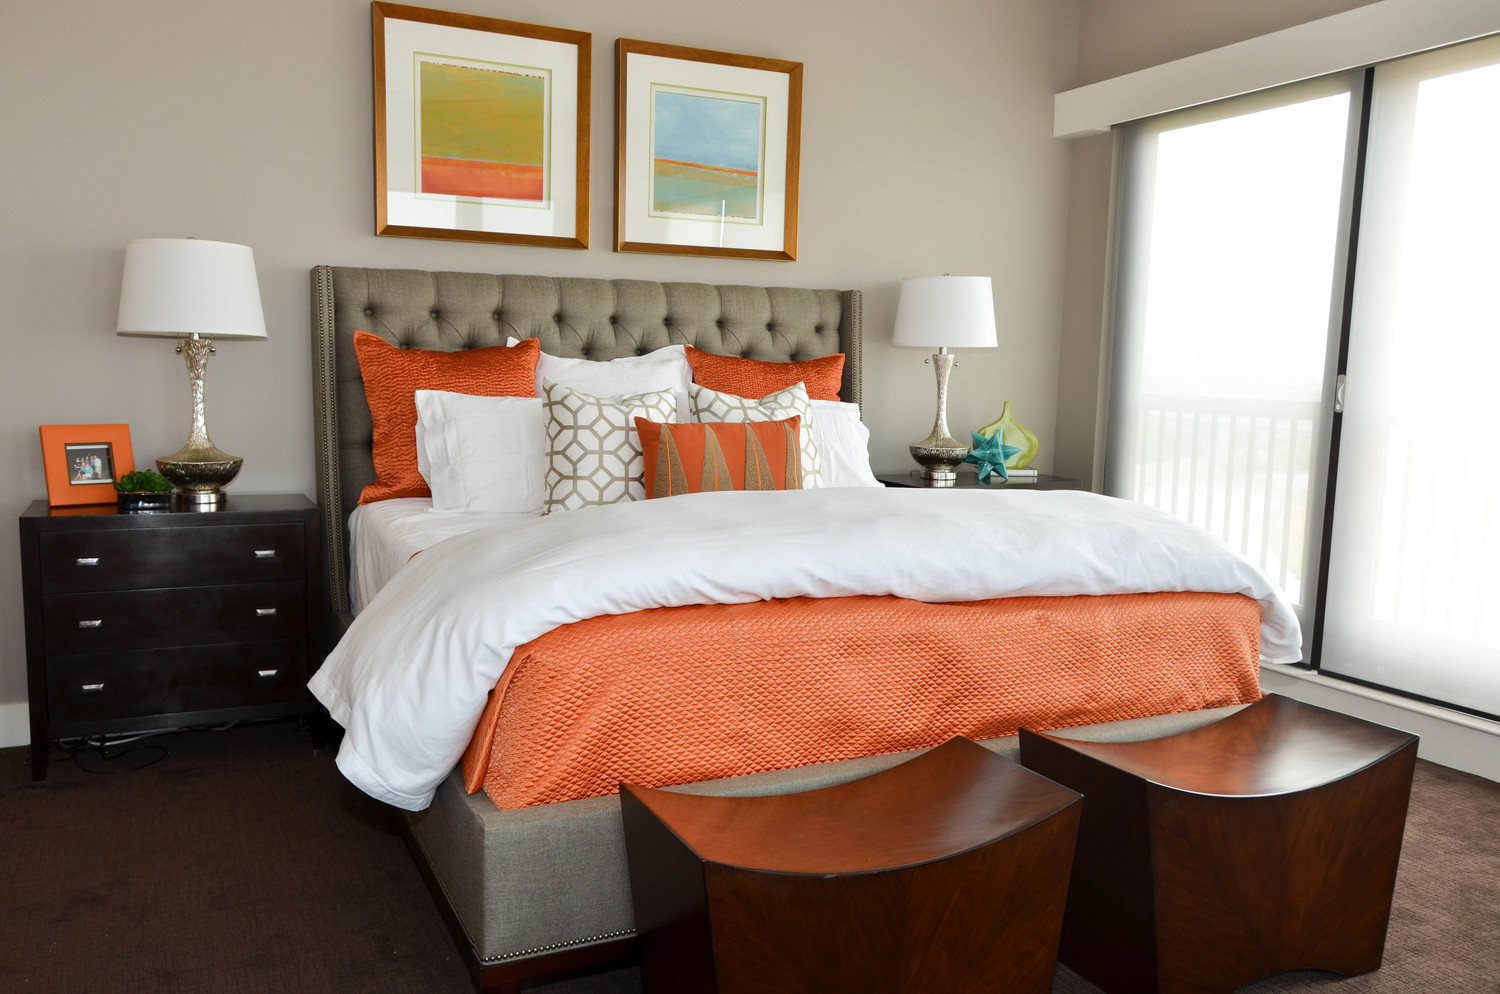 Transitional master bedroom with orange color